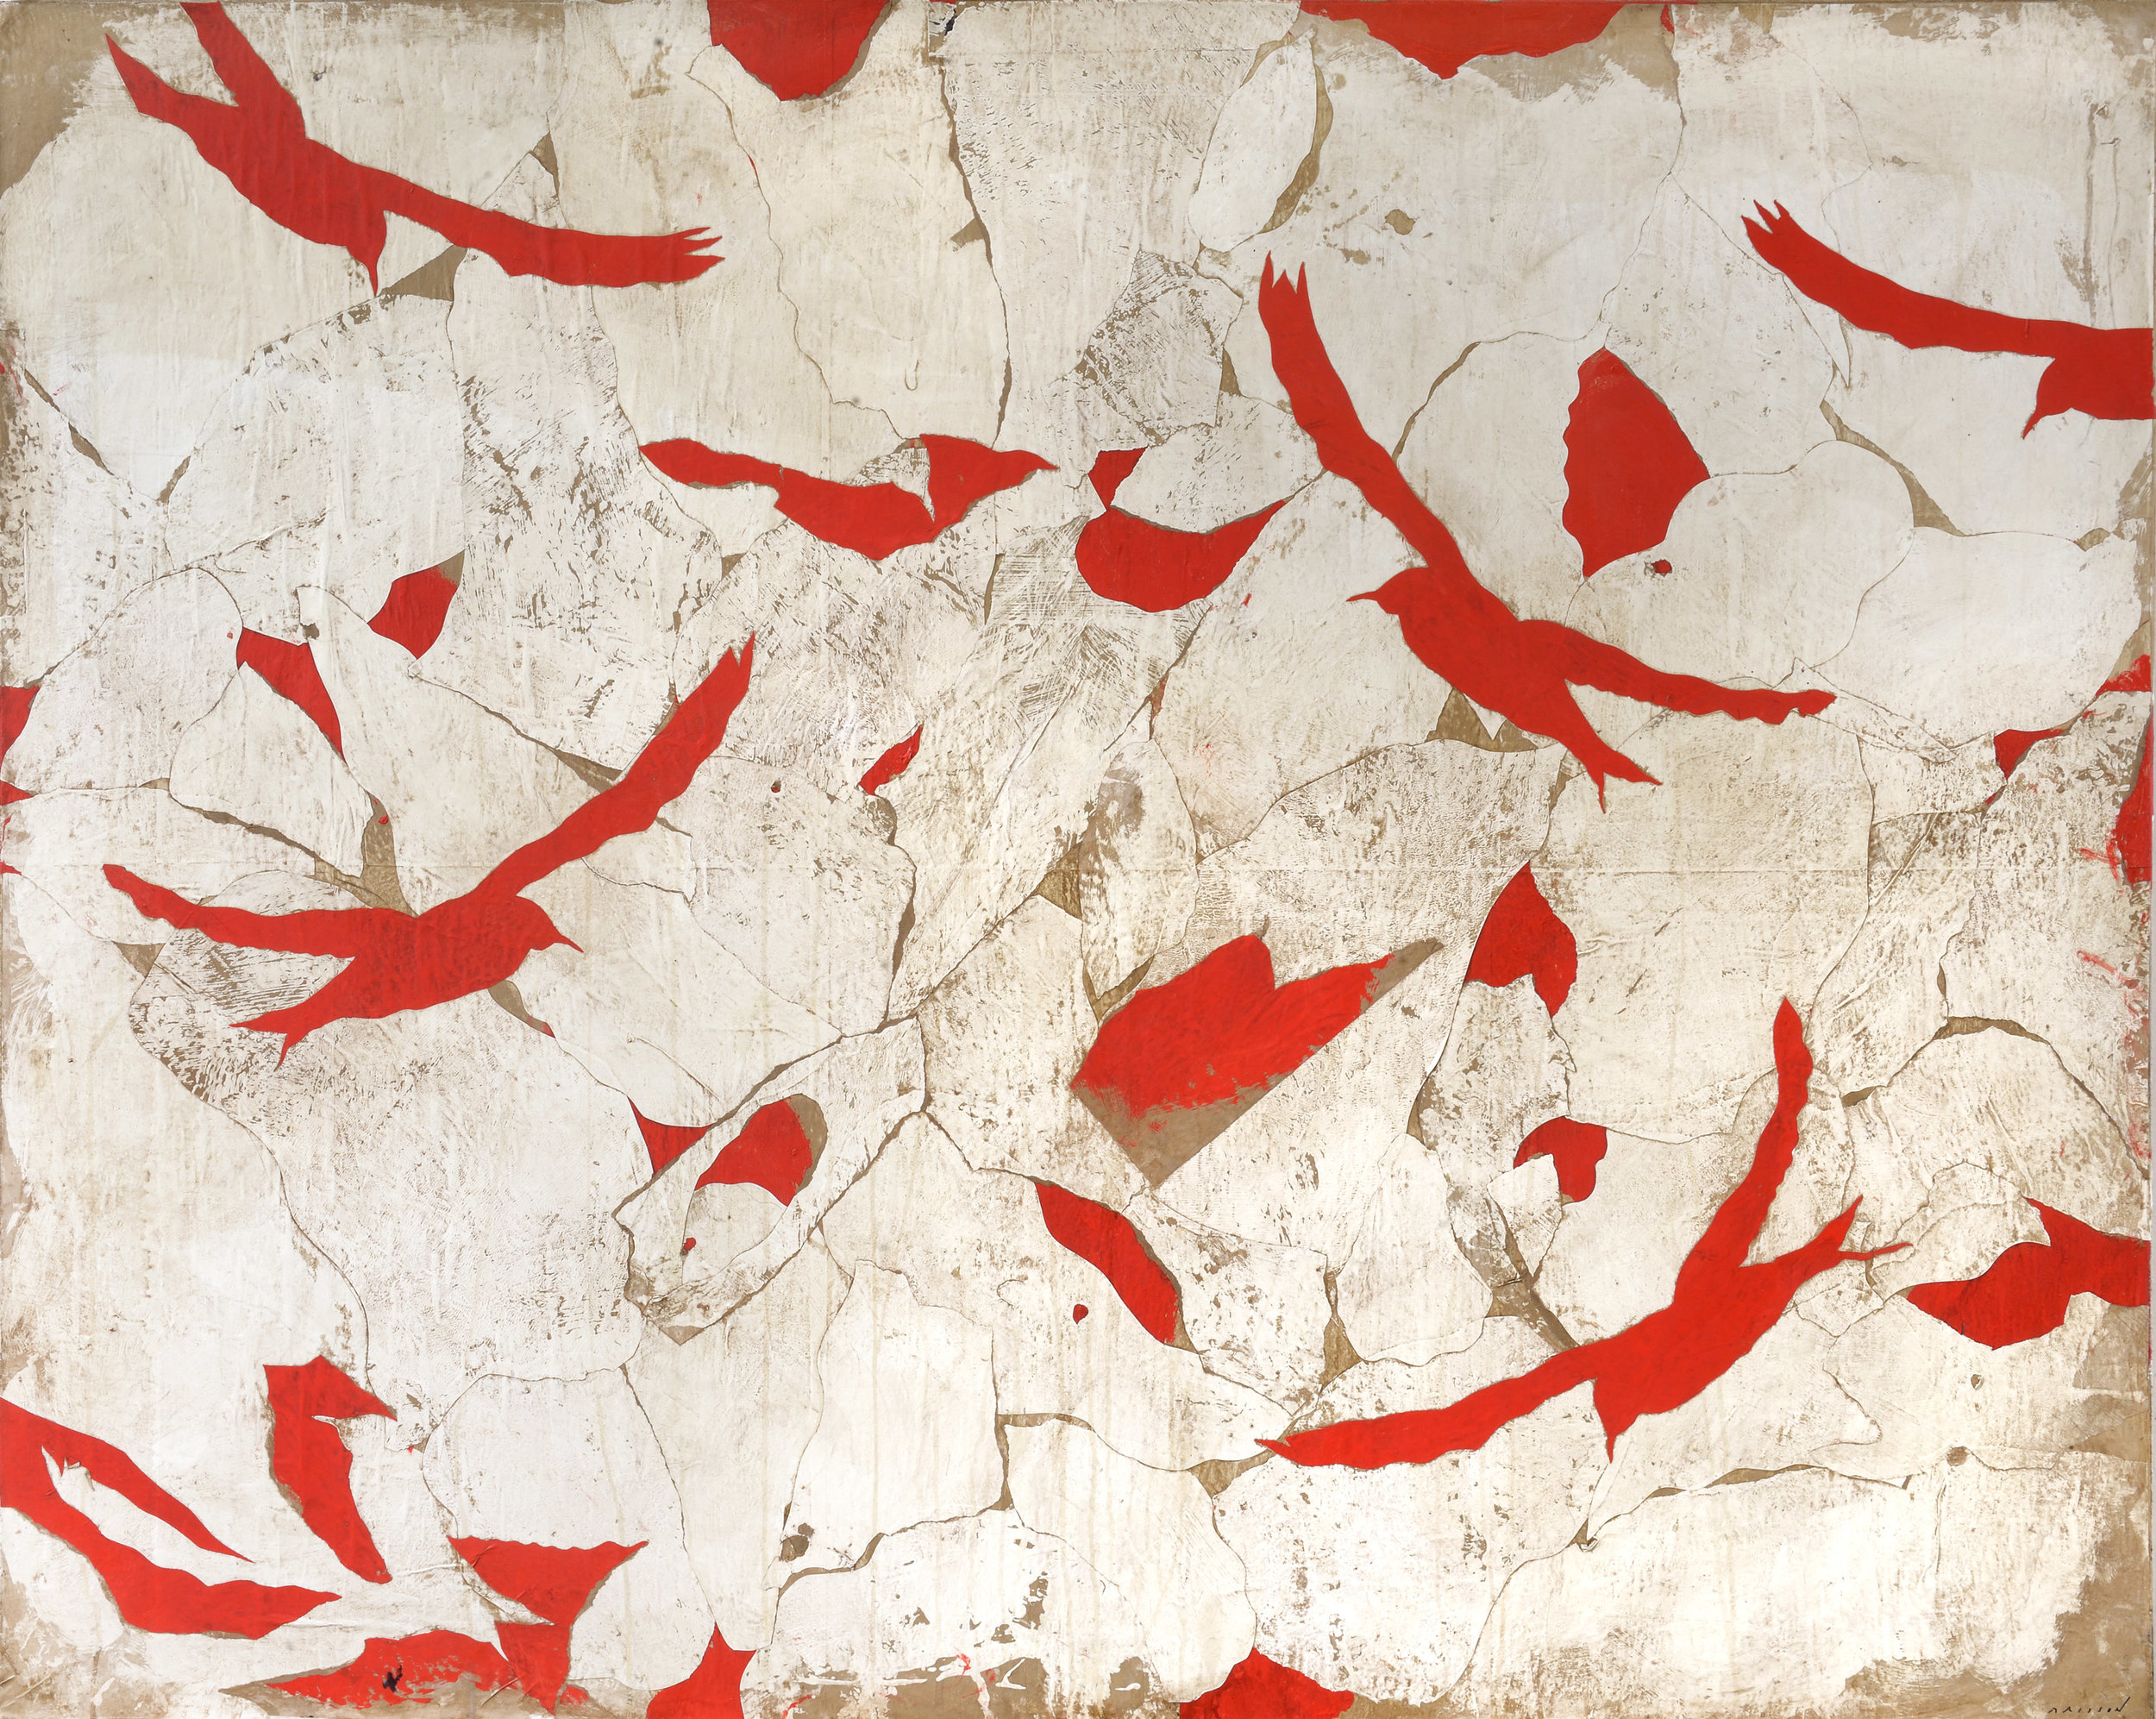 PIERRE MARIE BRISSON, Comme des oiseaux, mixed media on canvas, 51 x 64 in, 2017